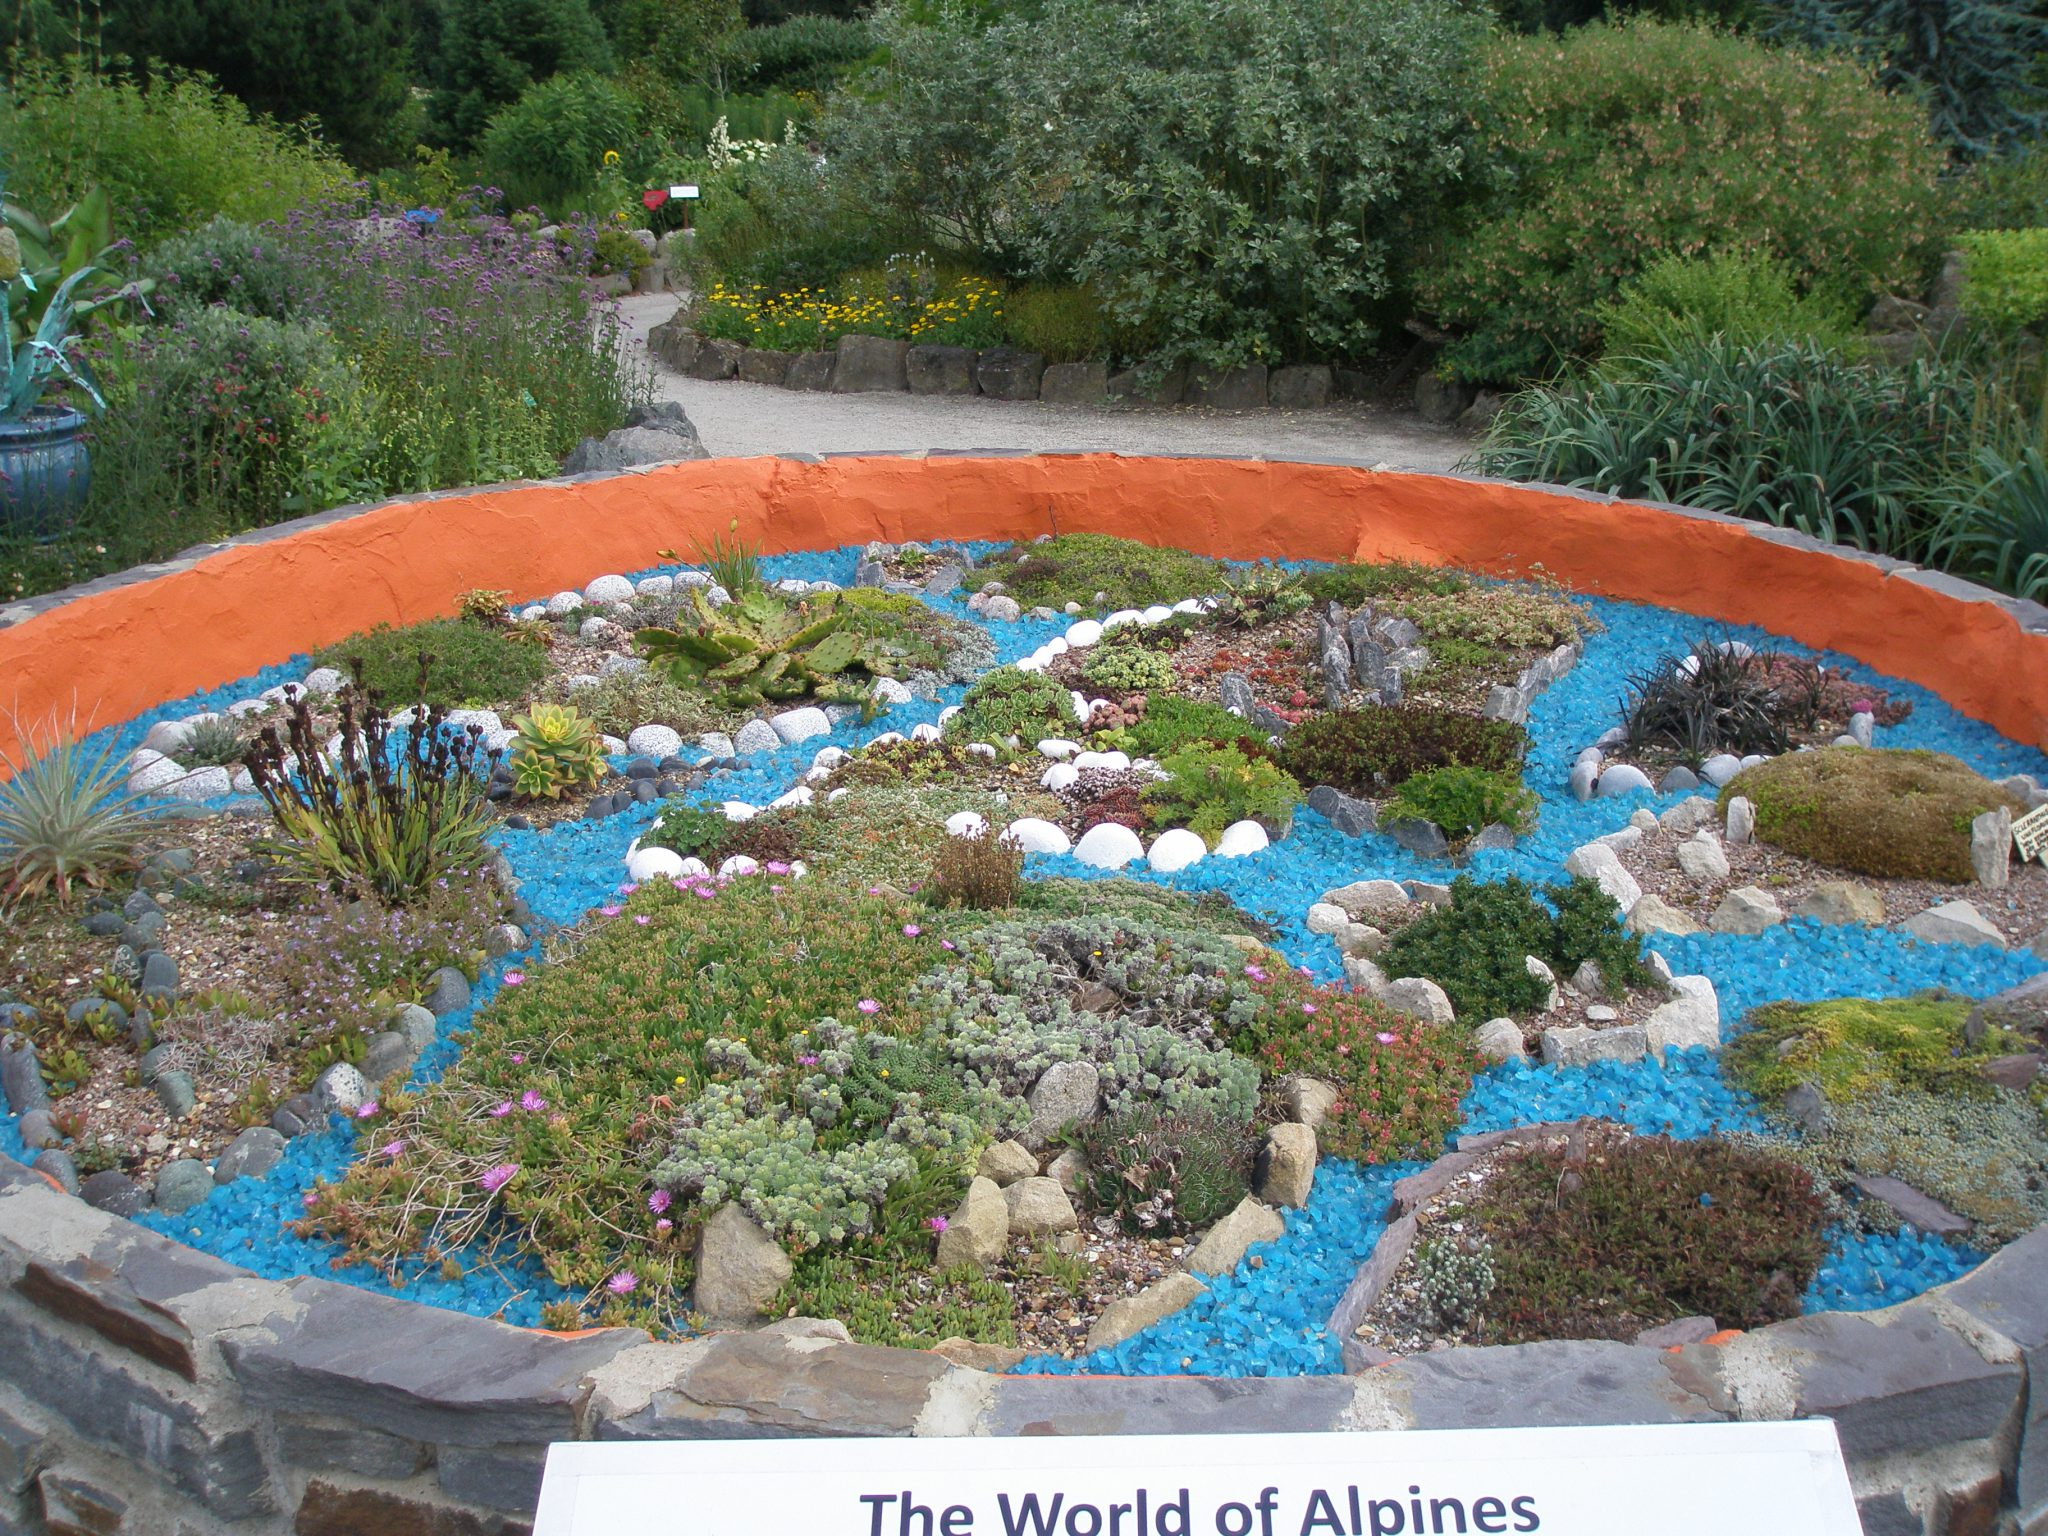 At the entry to The World Garden is an even smaller World Garden; this one mapped out with Alpine Plants